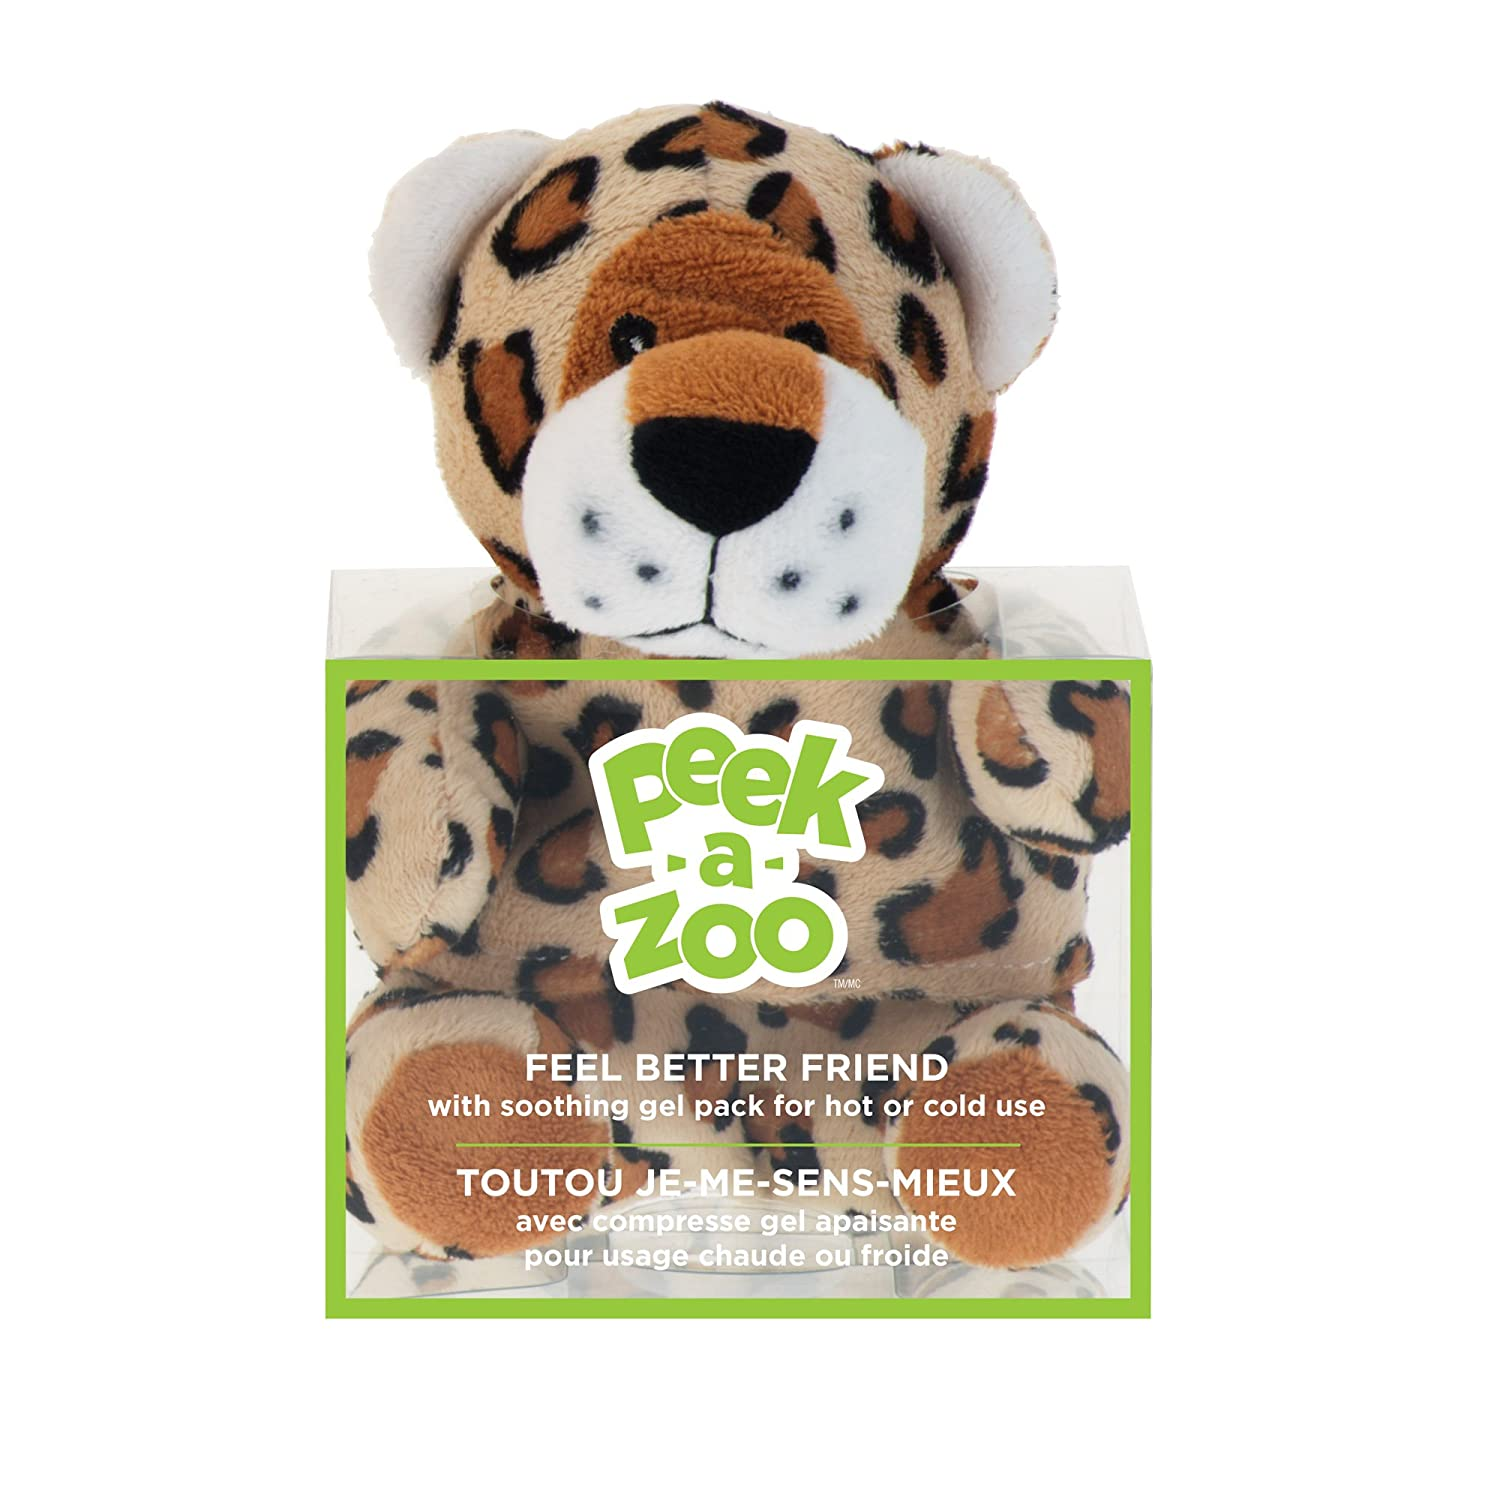 Amazon.com: Upper Canada Soap Peek-A-Zoo Feel Better Friend Hot/Cold Pack, Leopard: Health & Personal Care